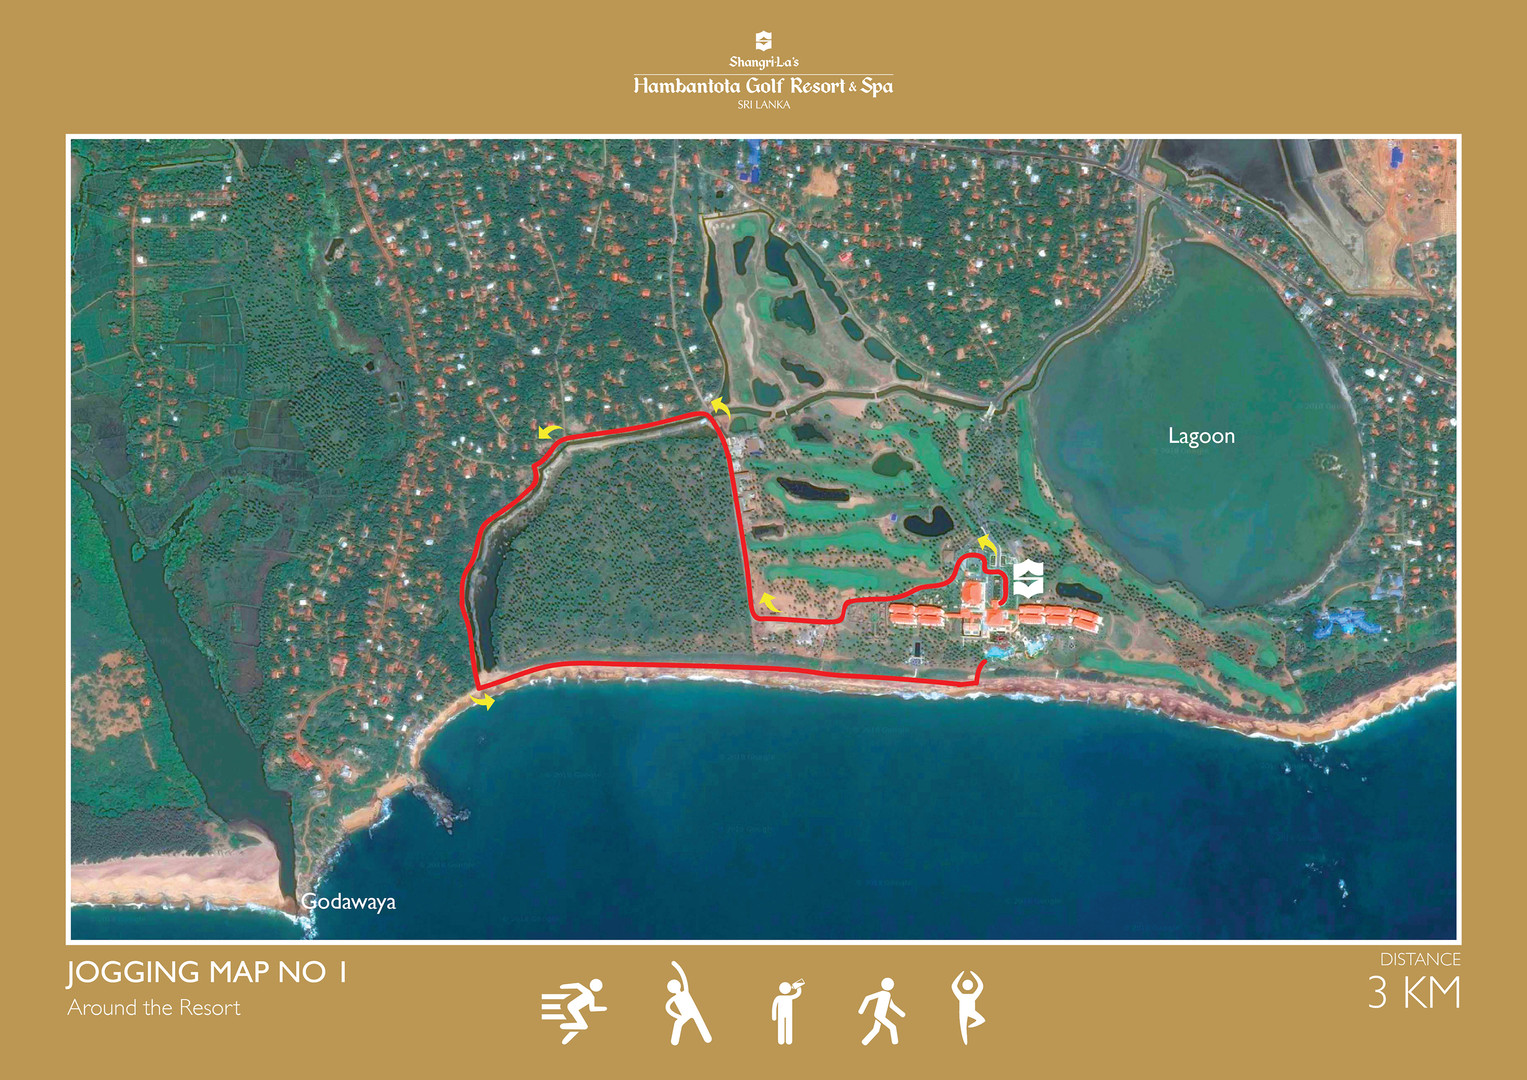 Jogging Route One